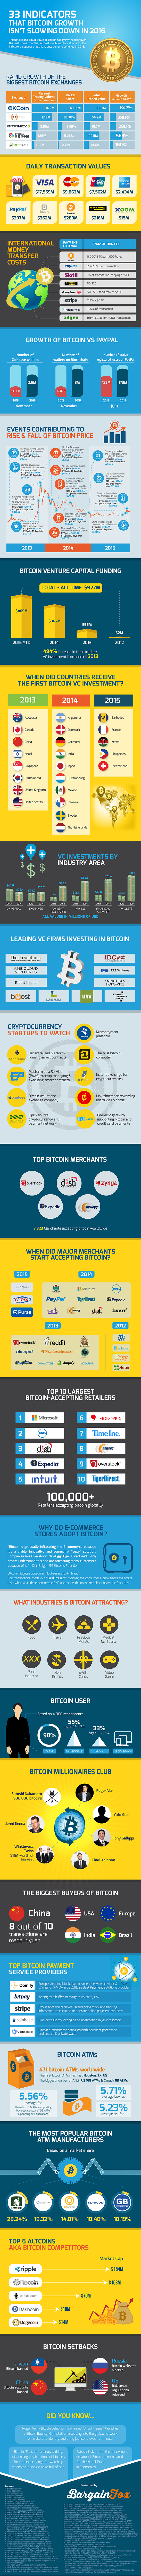 [INFOGRAPHIC] 33 Indicators That Bitcoin Isn't Slowing down in 2016